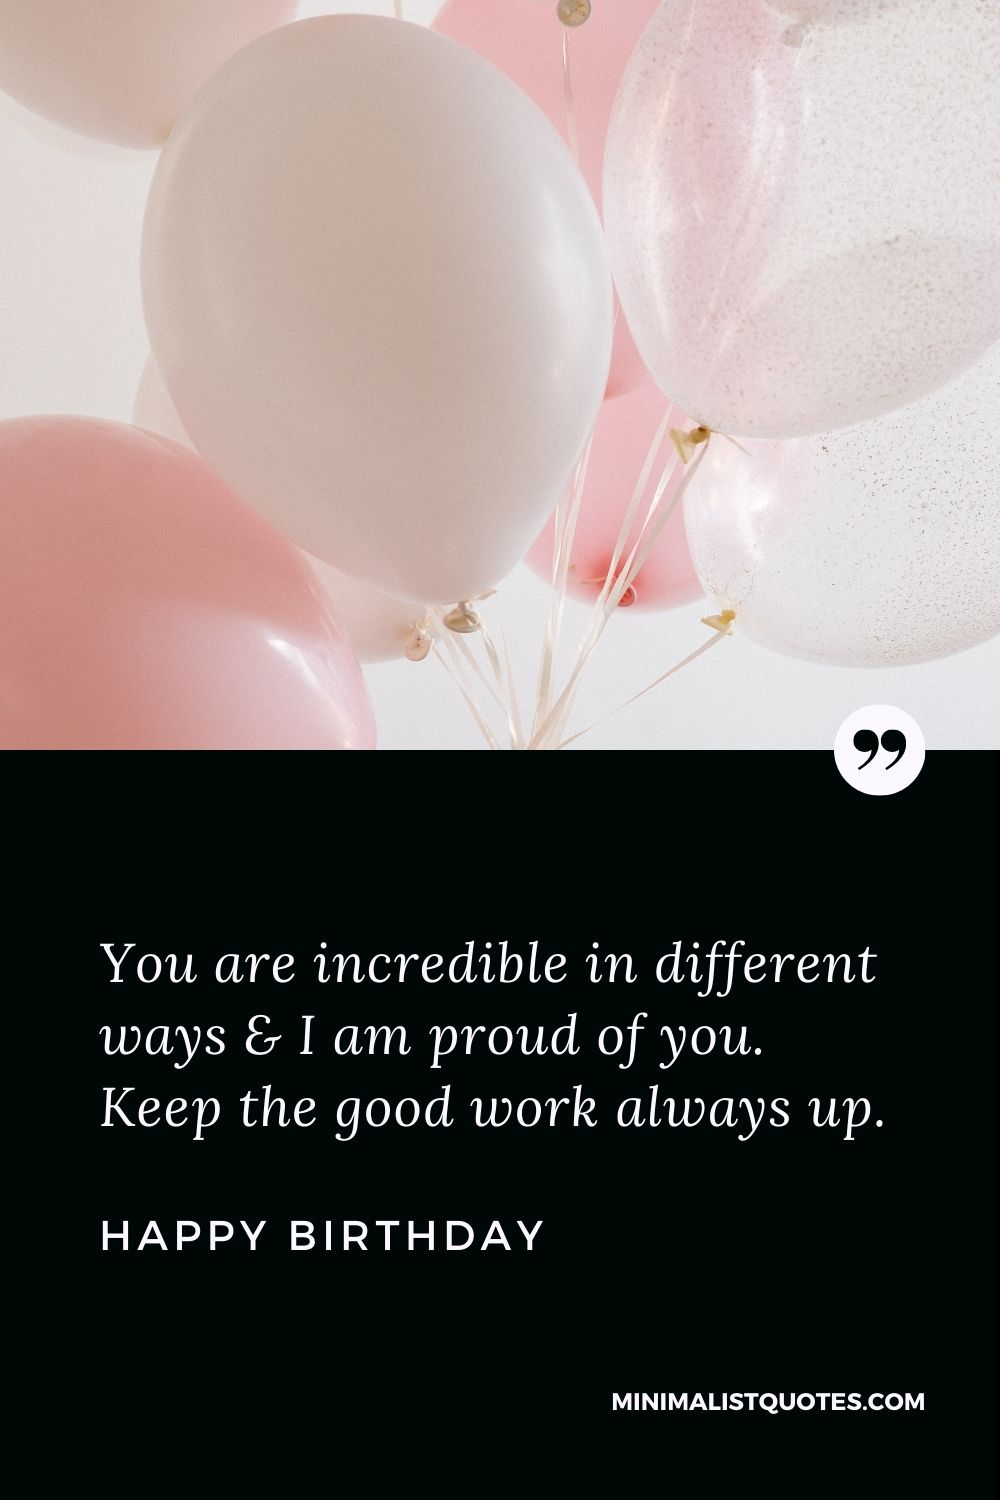 Happy Birthday Wishes - You are incredible in different ways & I am proud of you. Keep the good work always up.